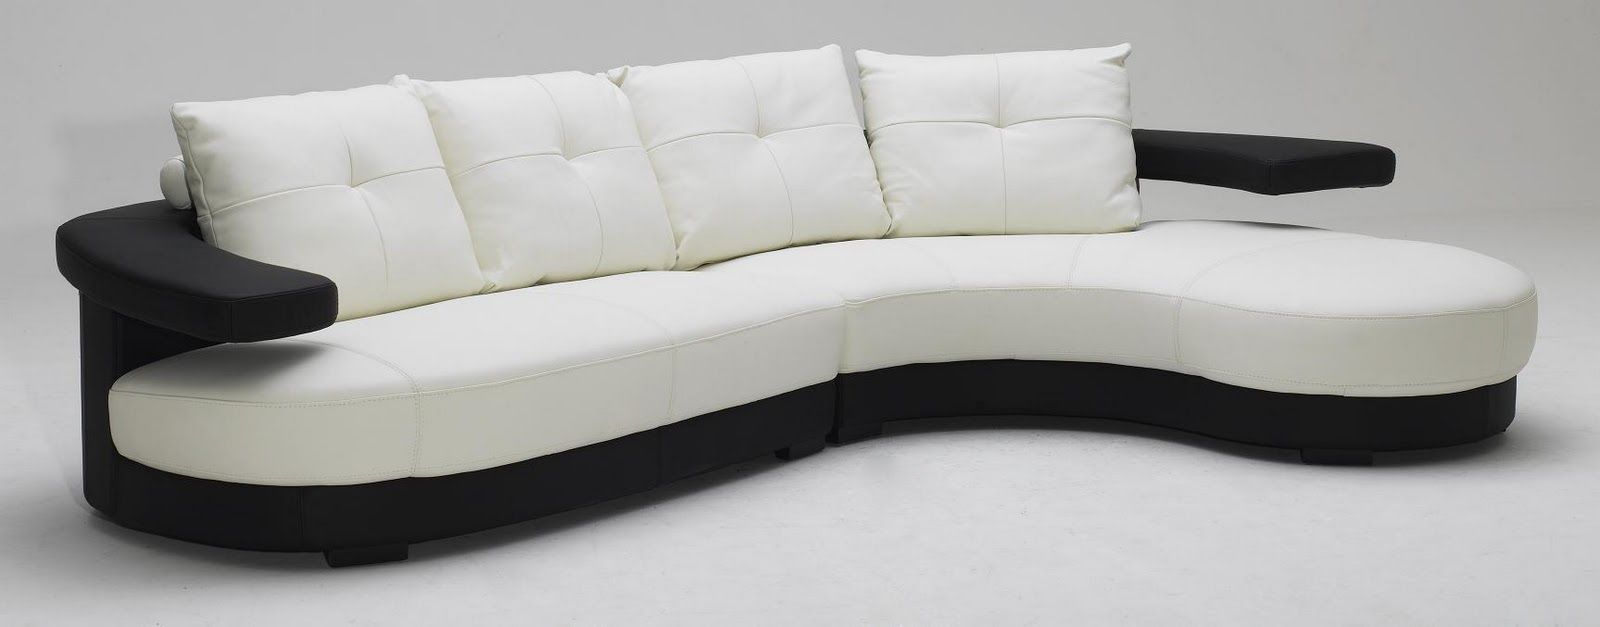 unique modern sofa set designs and brilliant contemporary leather